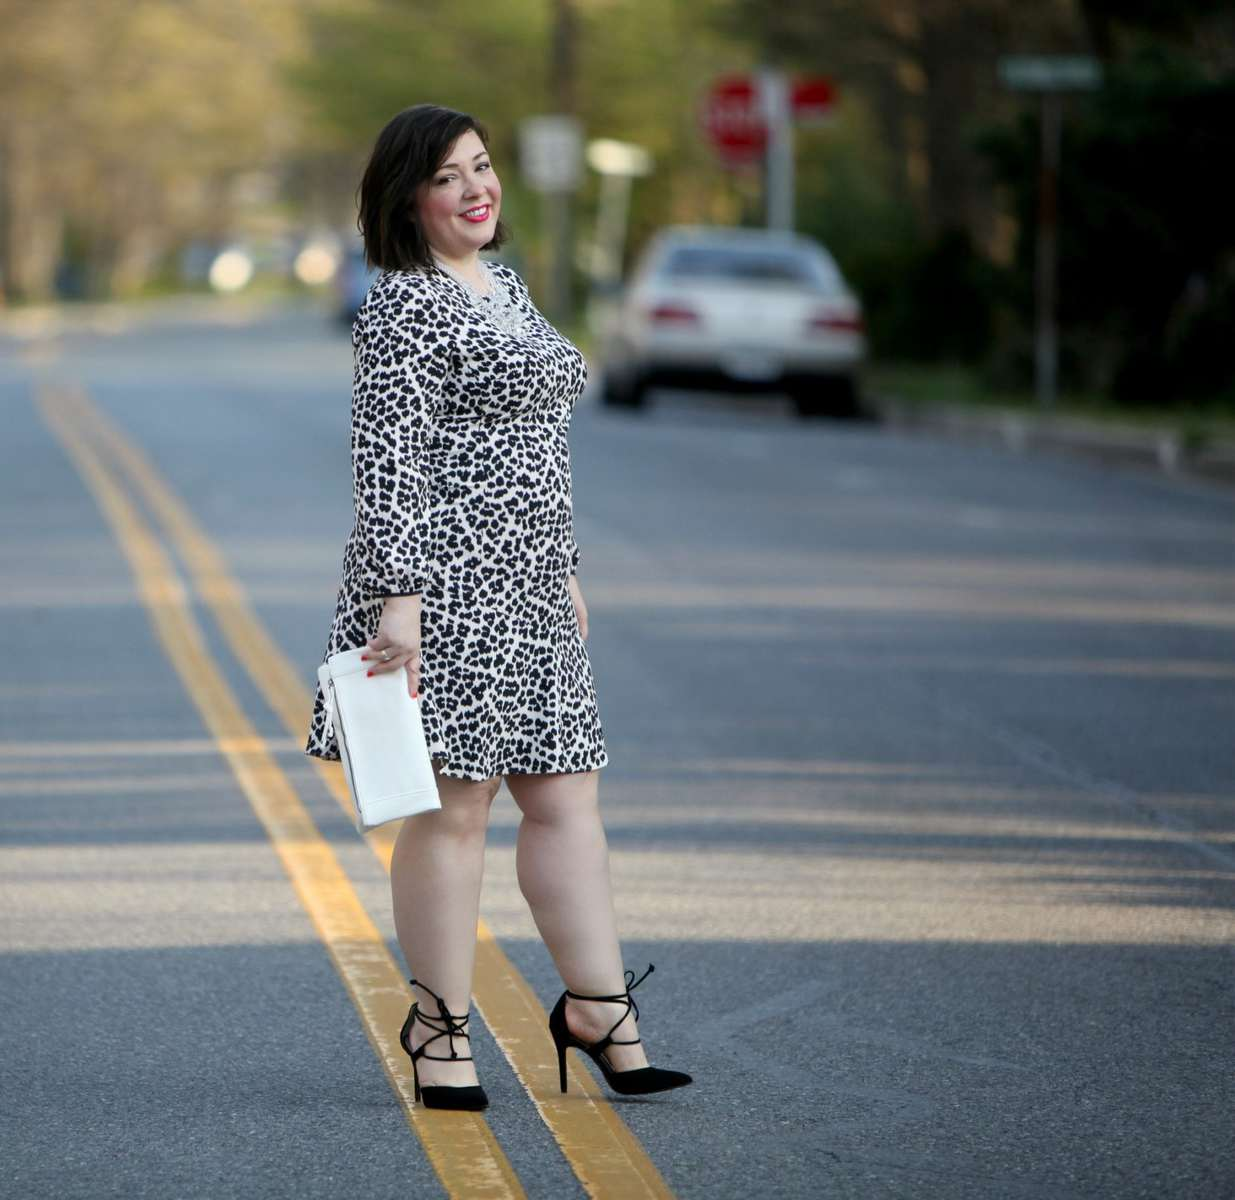 wardrobe oxygen over 40 fashion blog wearing ann taylor